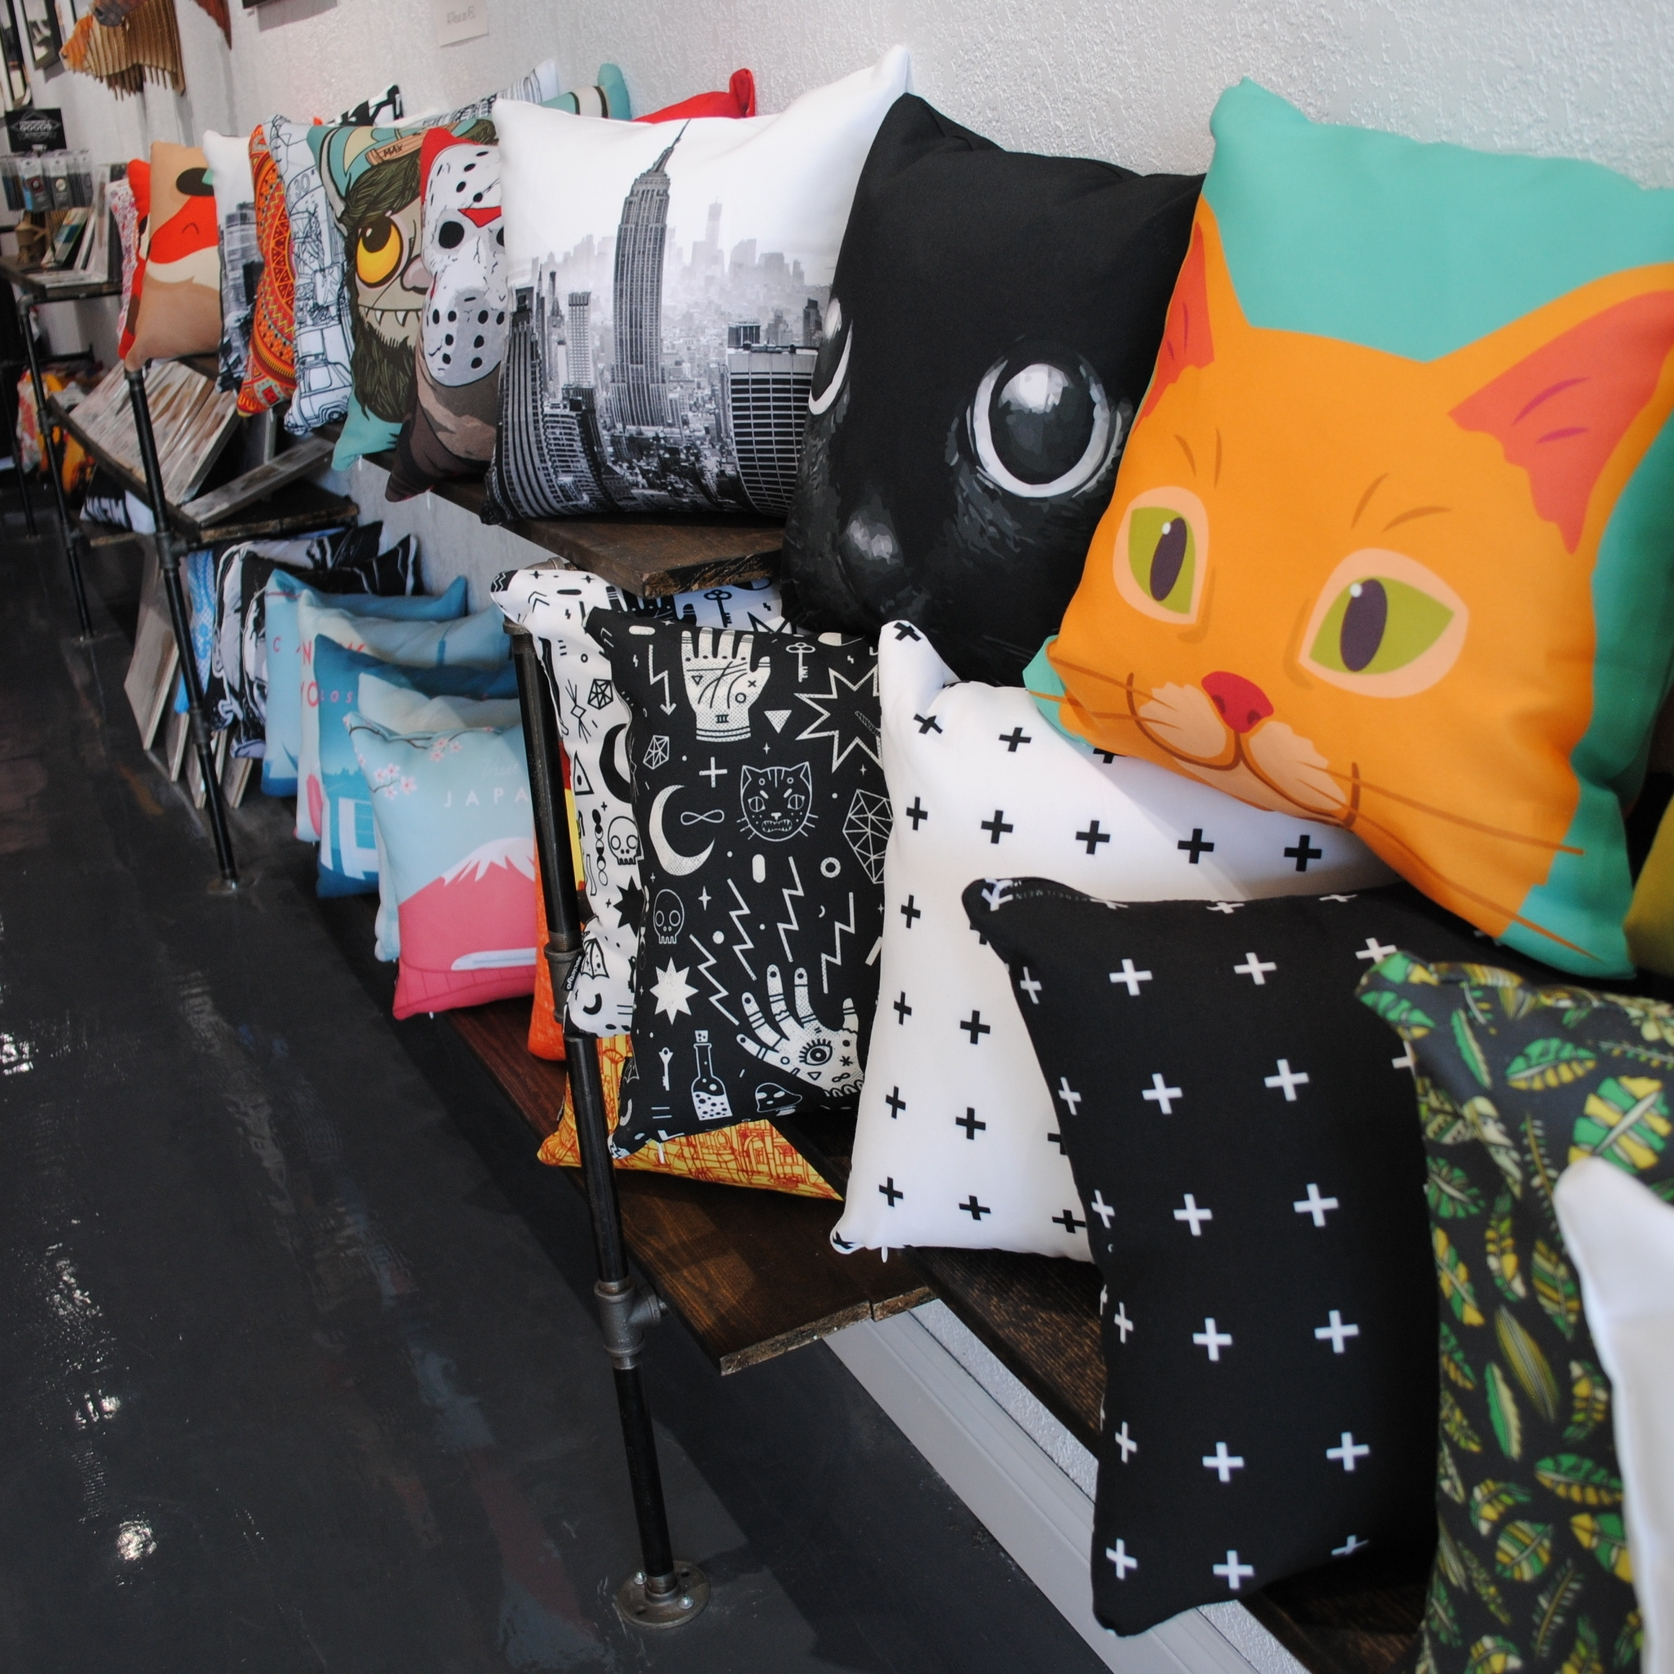 Graphic Art Pillows at The Prints and the Paper in Edmonton on 124 street